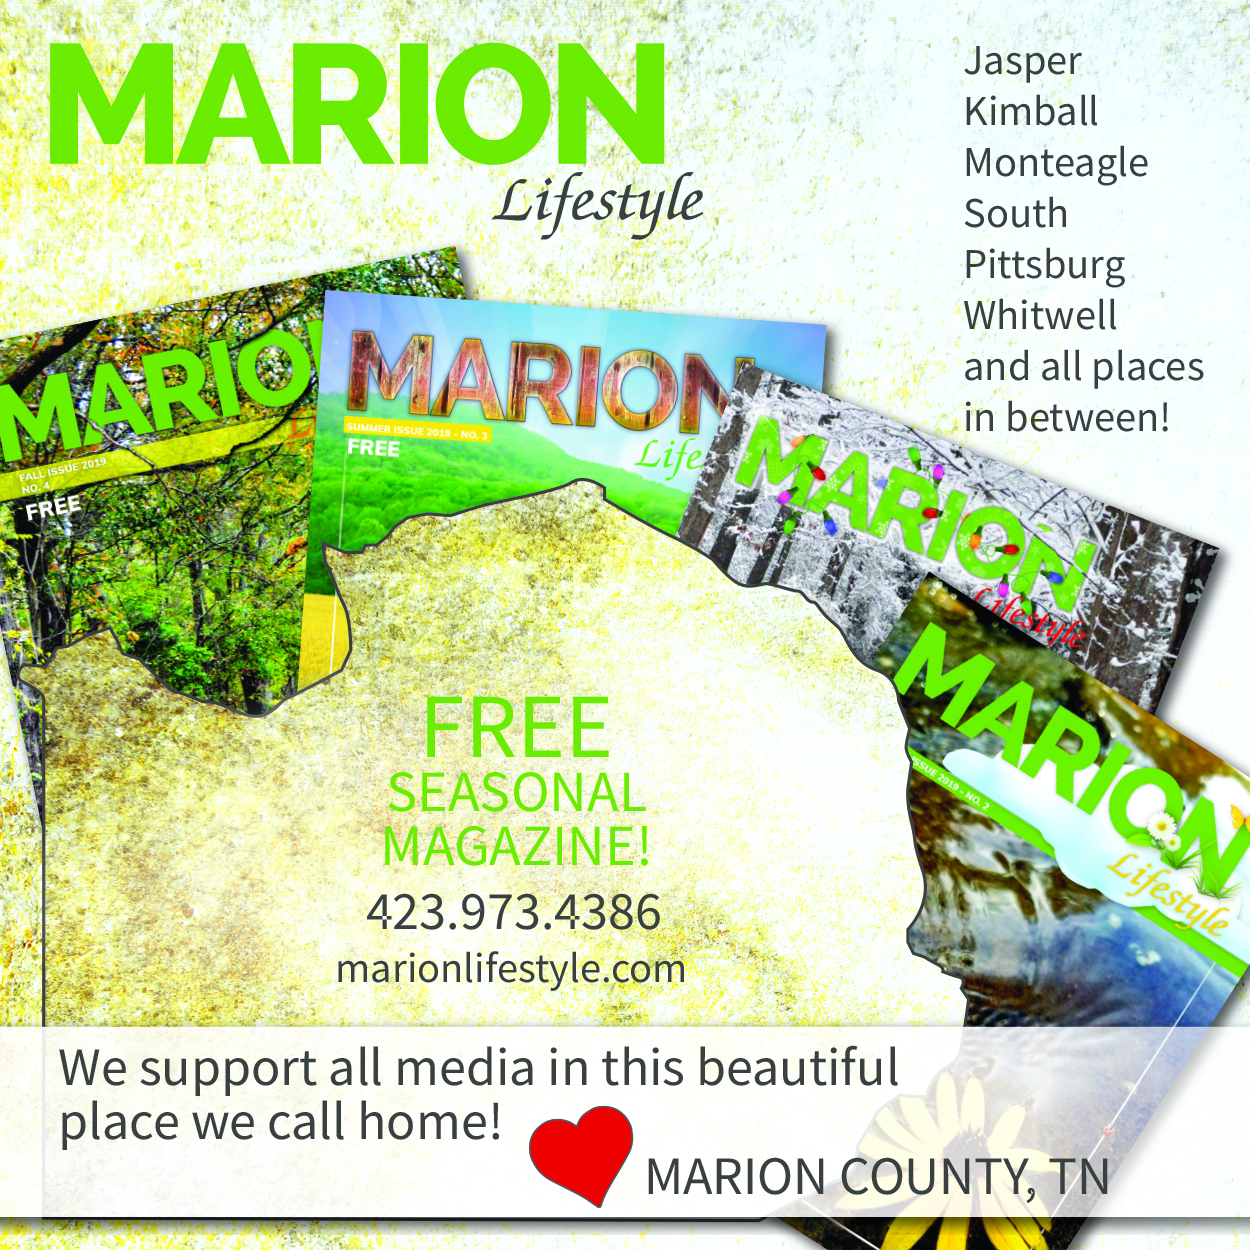 Tn Issues Guidance For Close Contact Businesses | Marion With Davidson County Tn School Calendar20